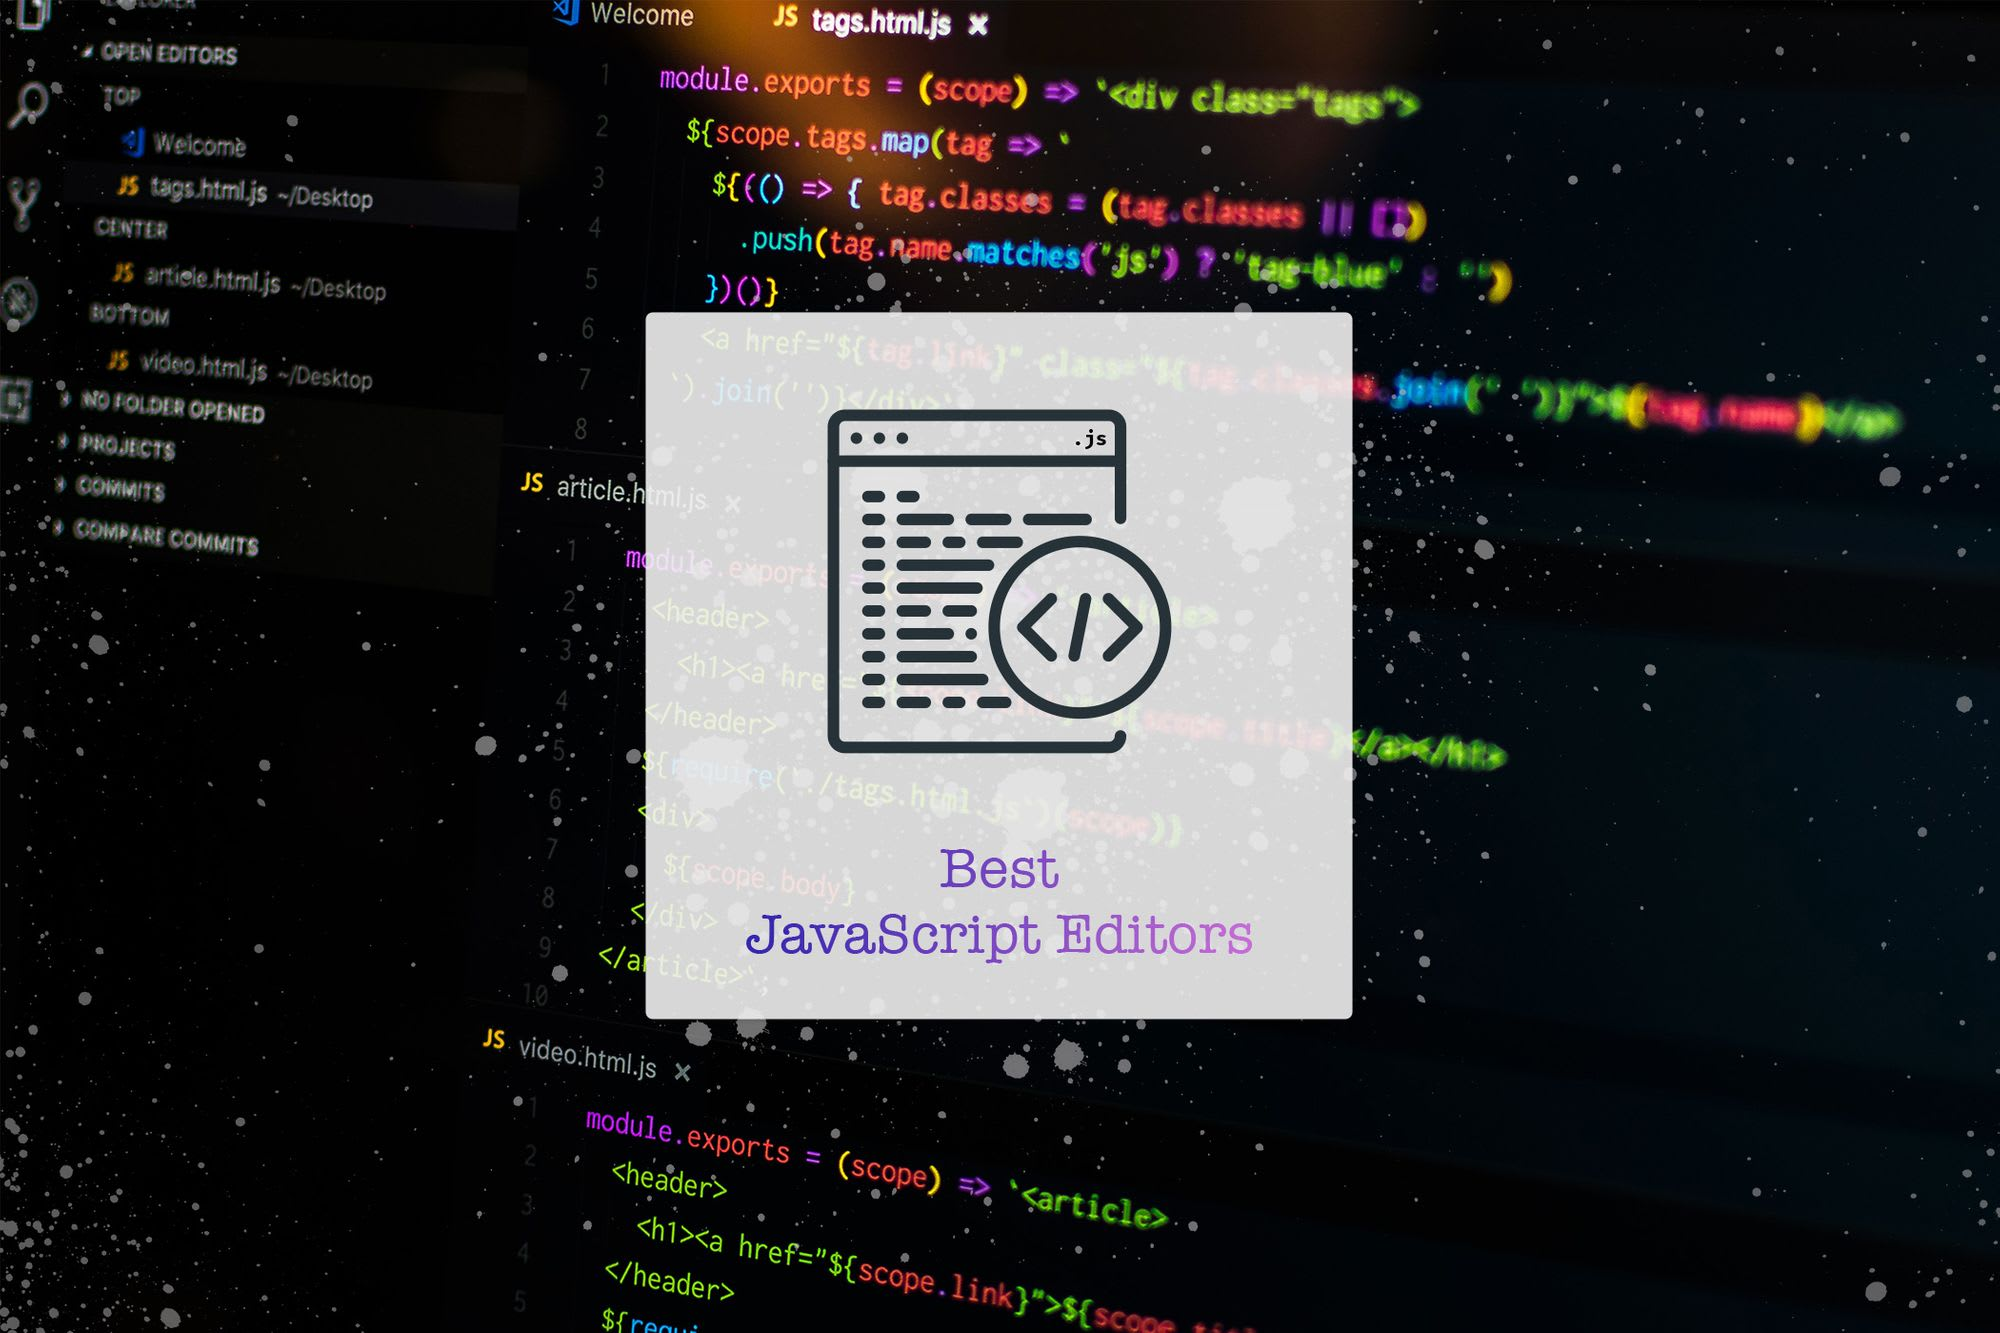 5 Best JavaScript Editors: Best Tools Ranked by Developers Worldwide